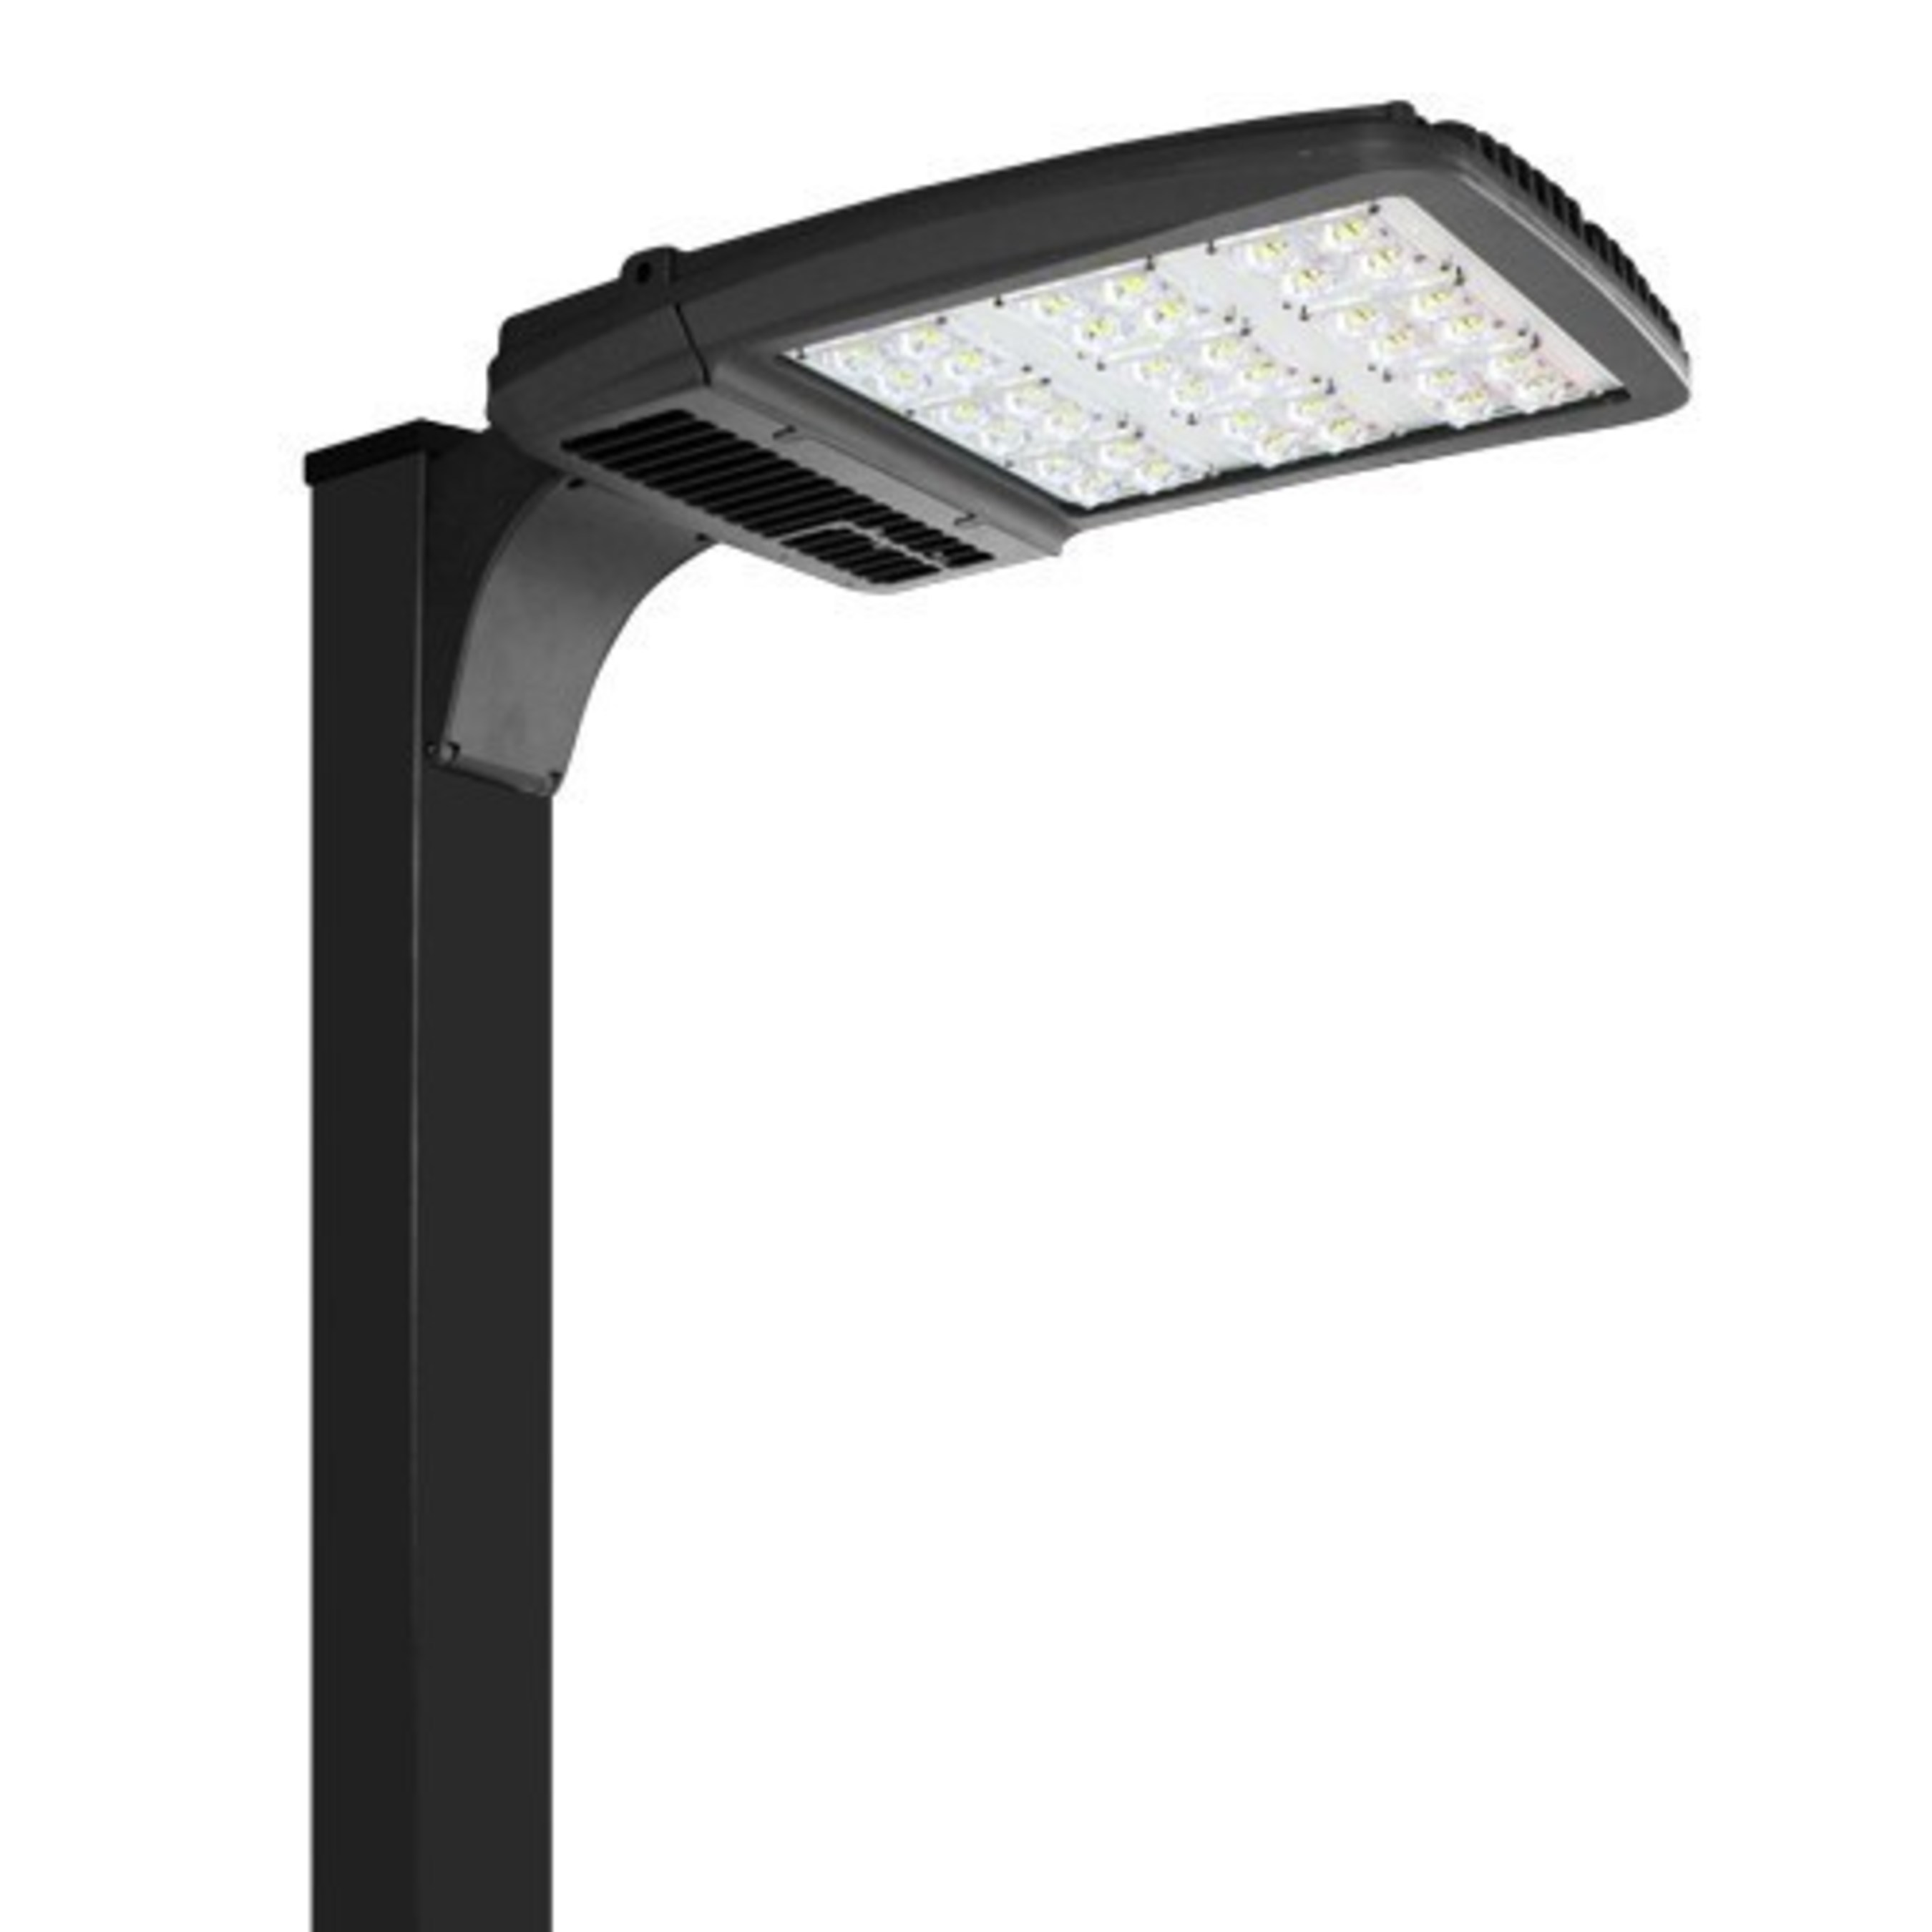 State-of-the-Art LED Area Lighting